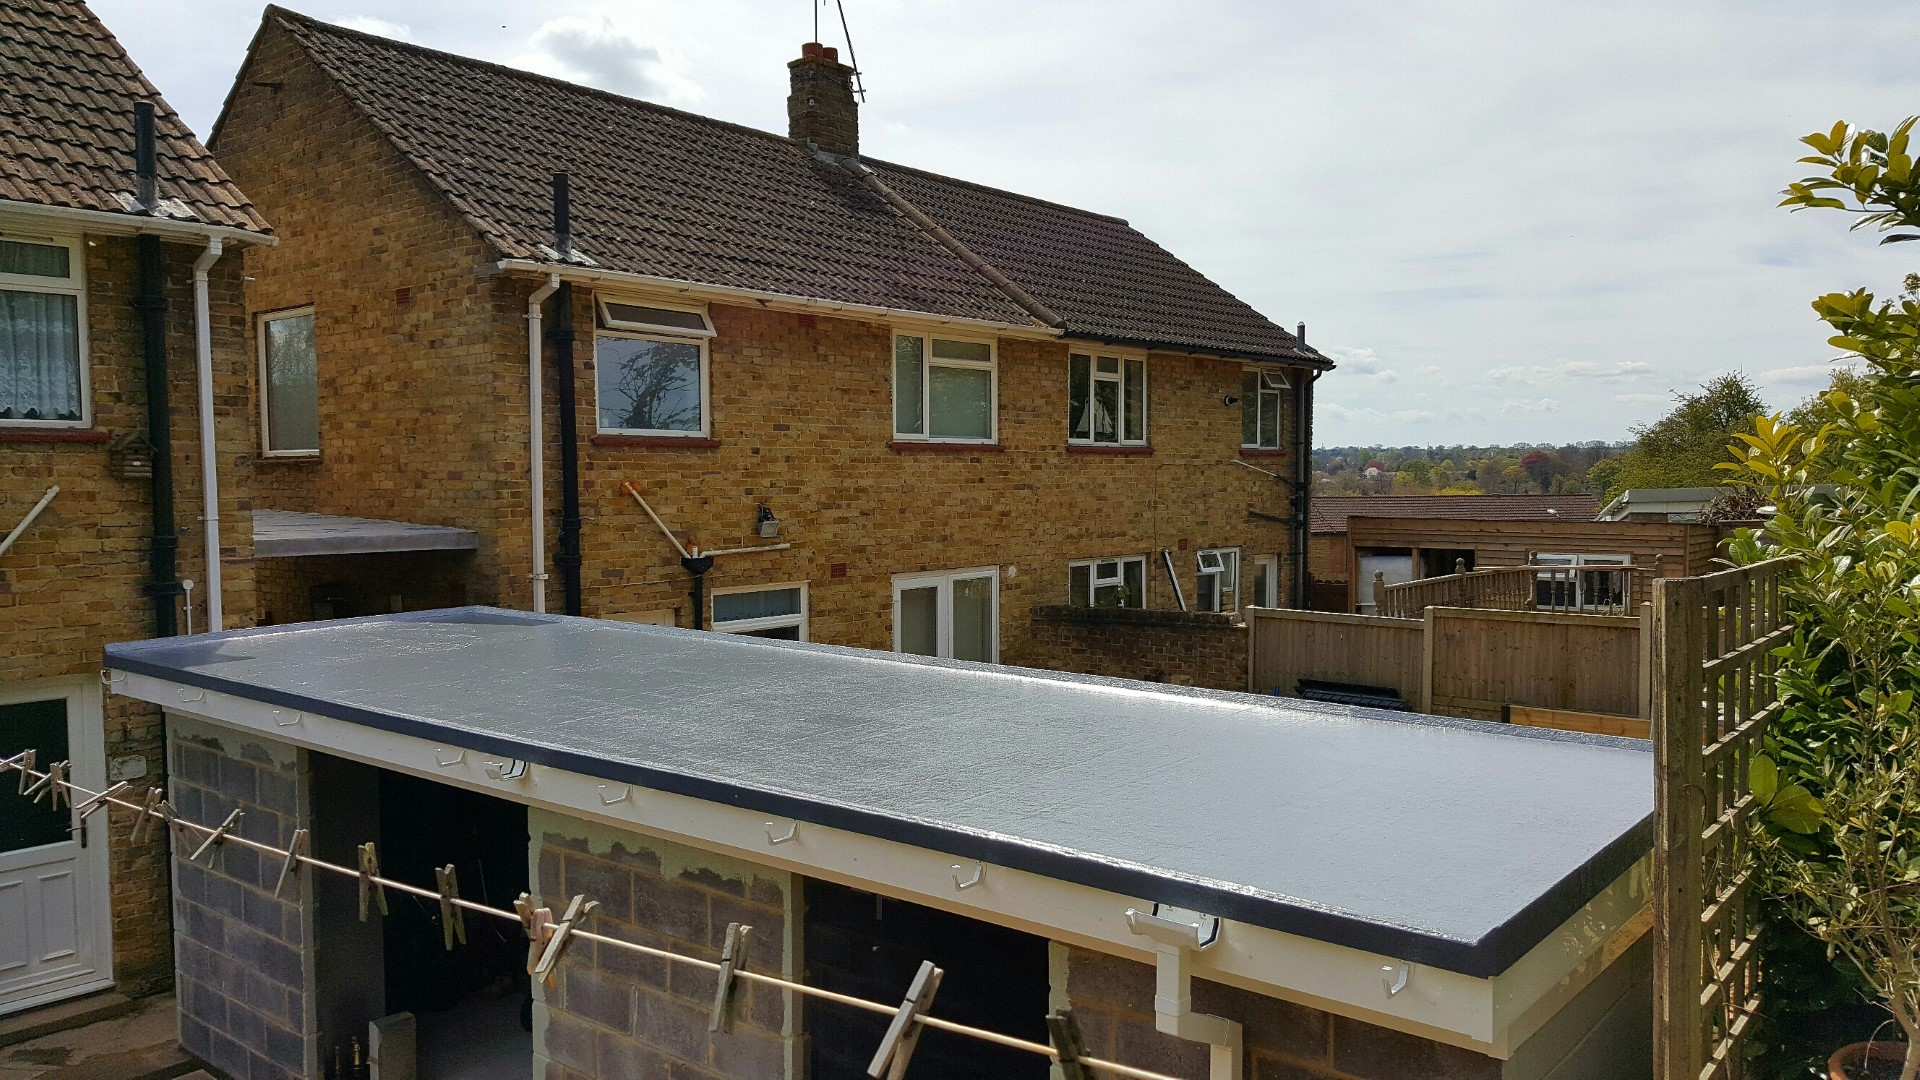 Flat roof picture 1